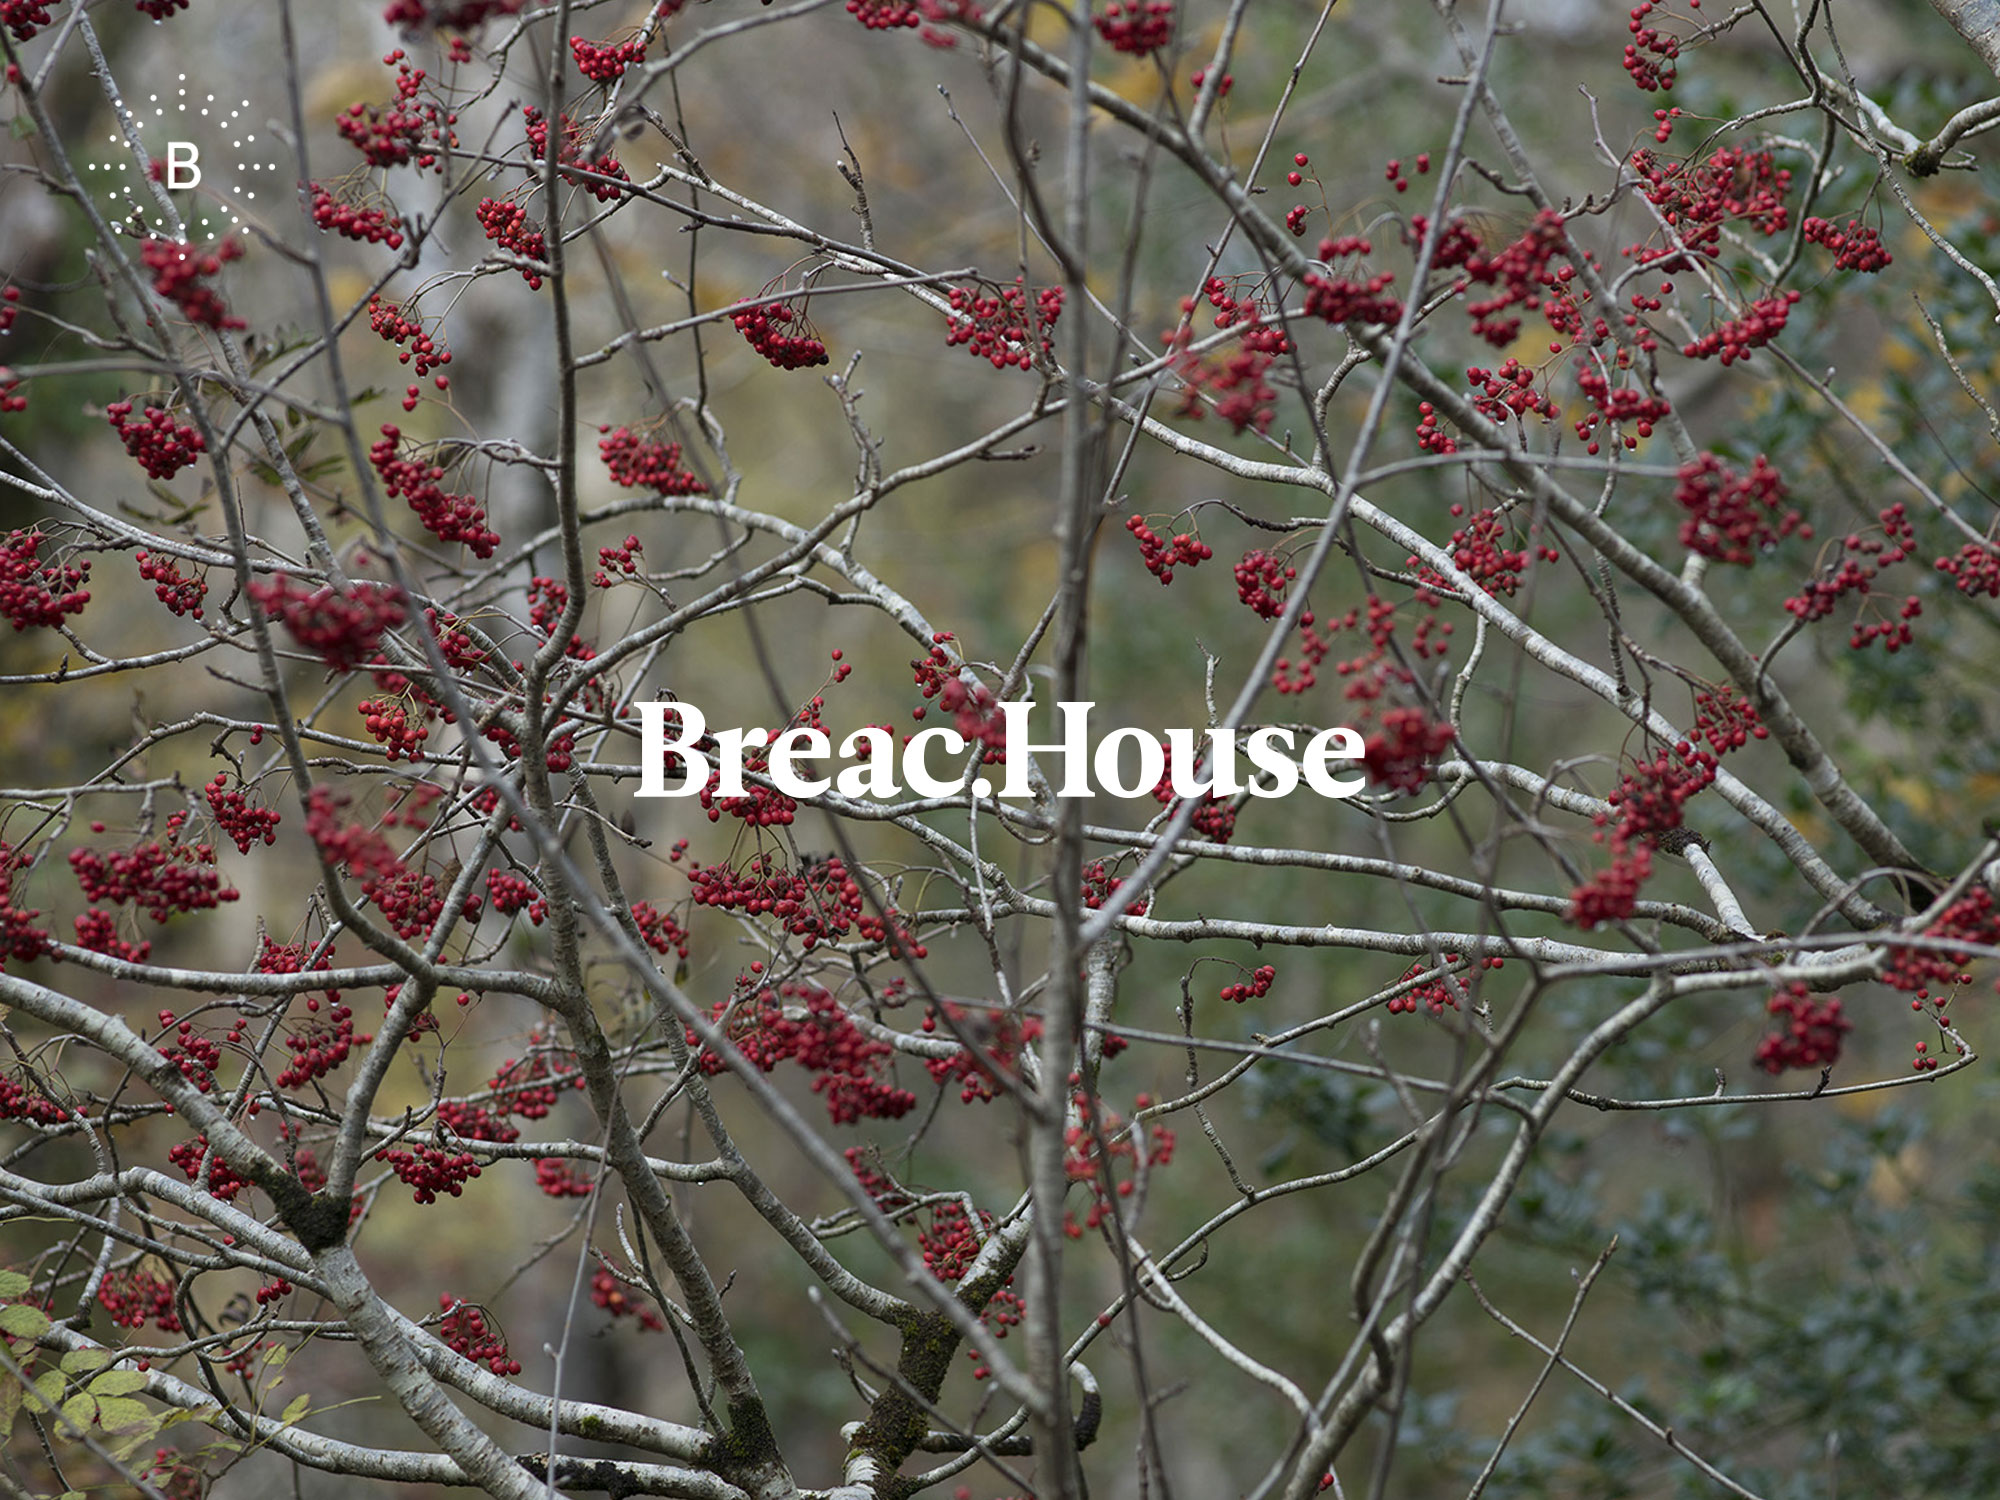 Cover image: Breac.House